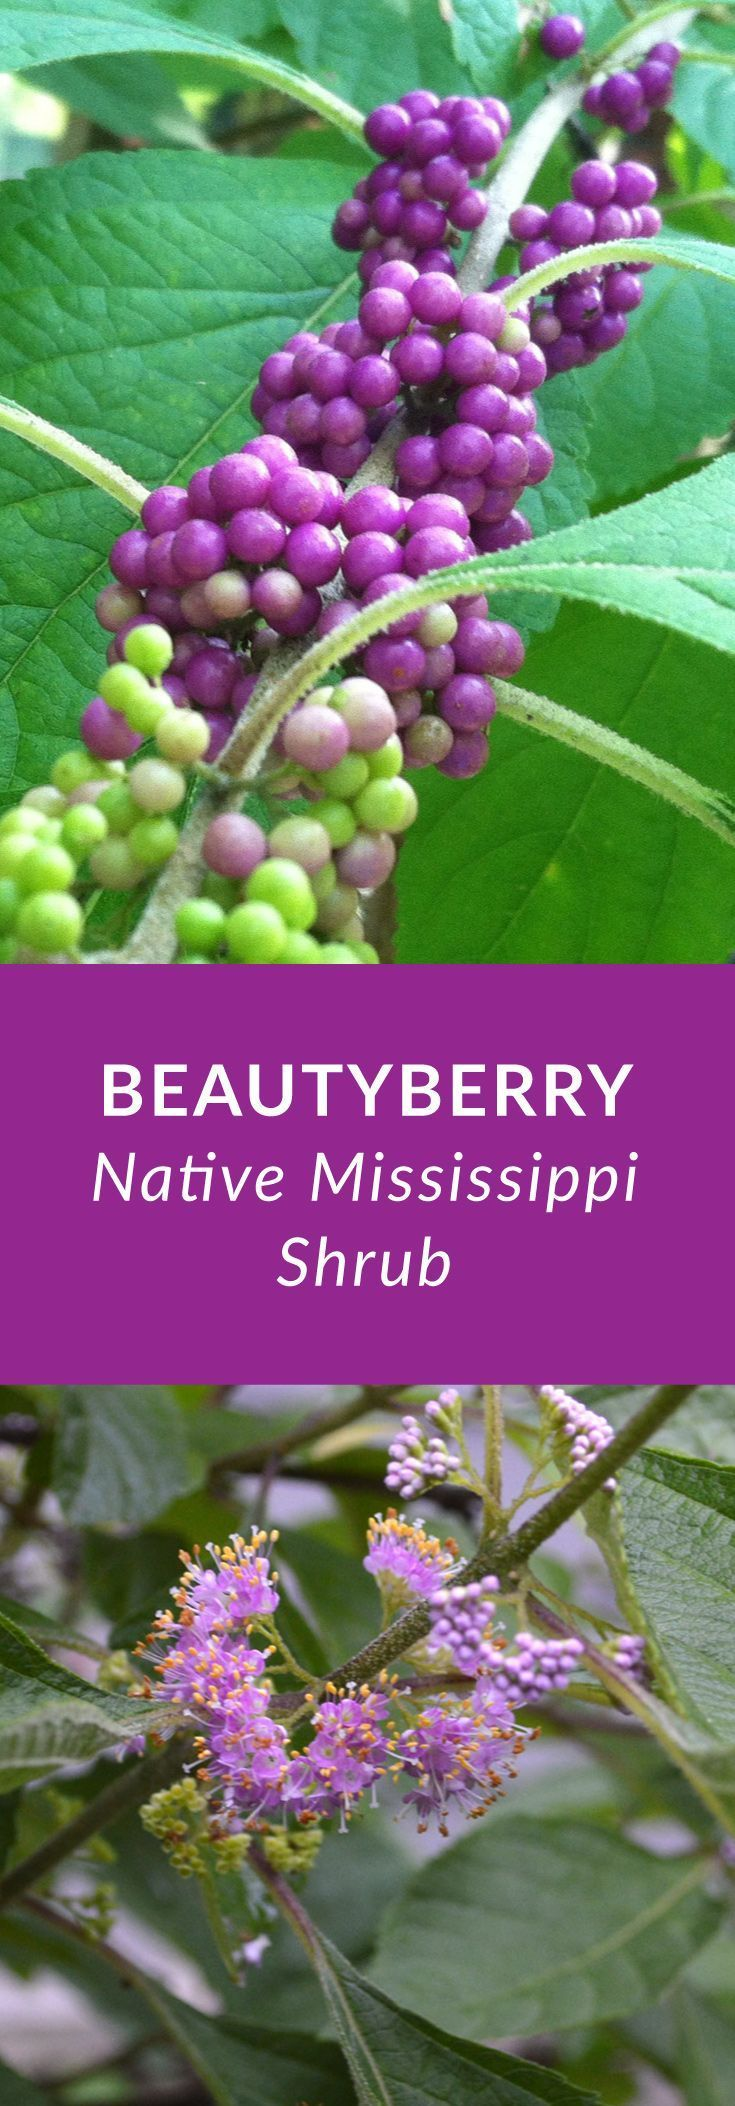 Beautyberry is a mississippi perennial native shrub with small